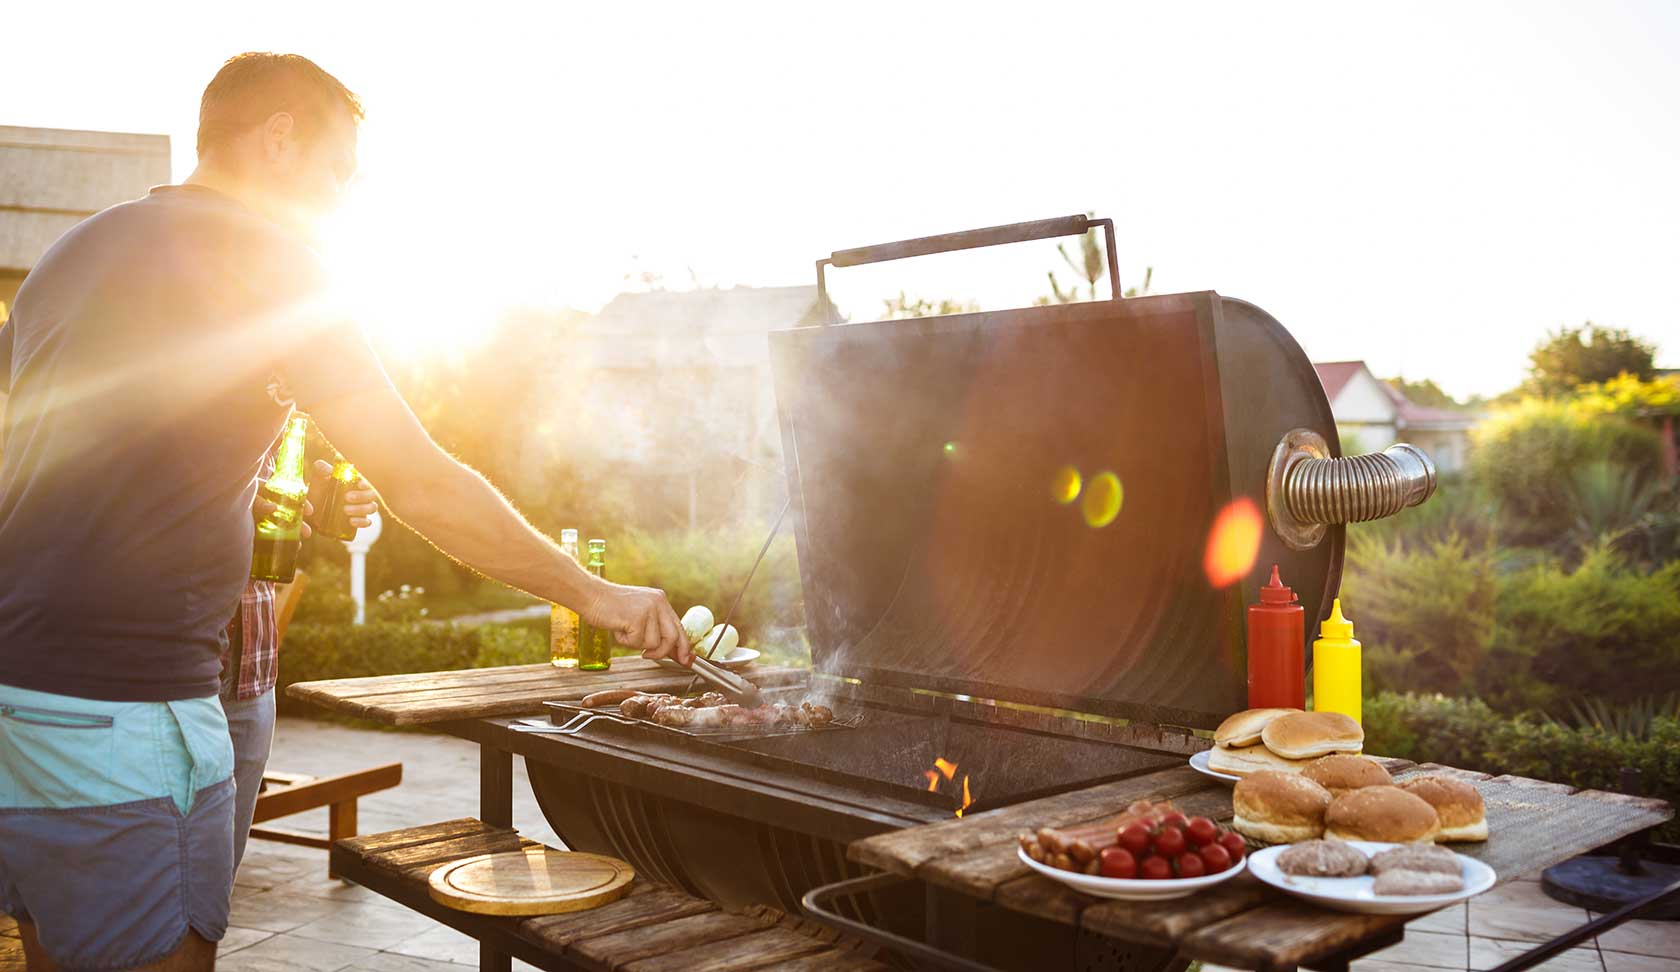 How To Have A Healthy 4th Of July And Not Turn Your 6-Pack Into A Keg